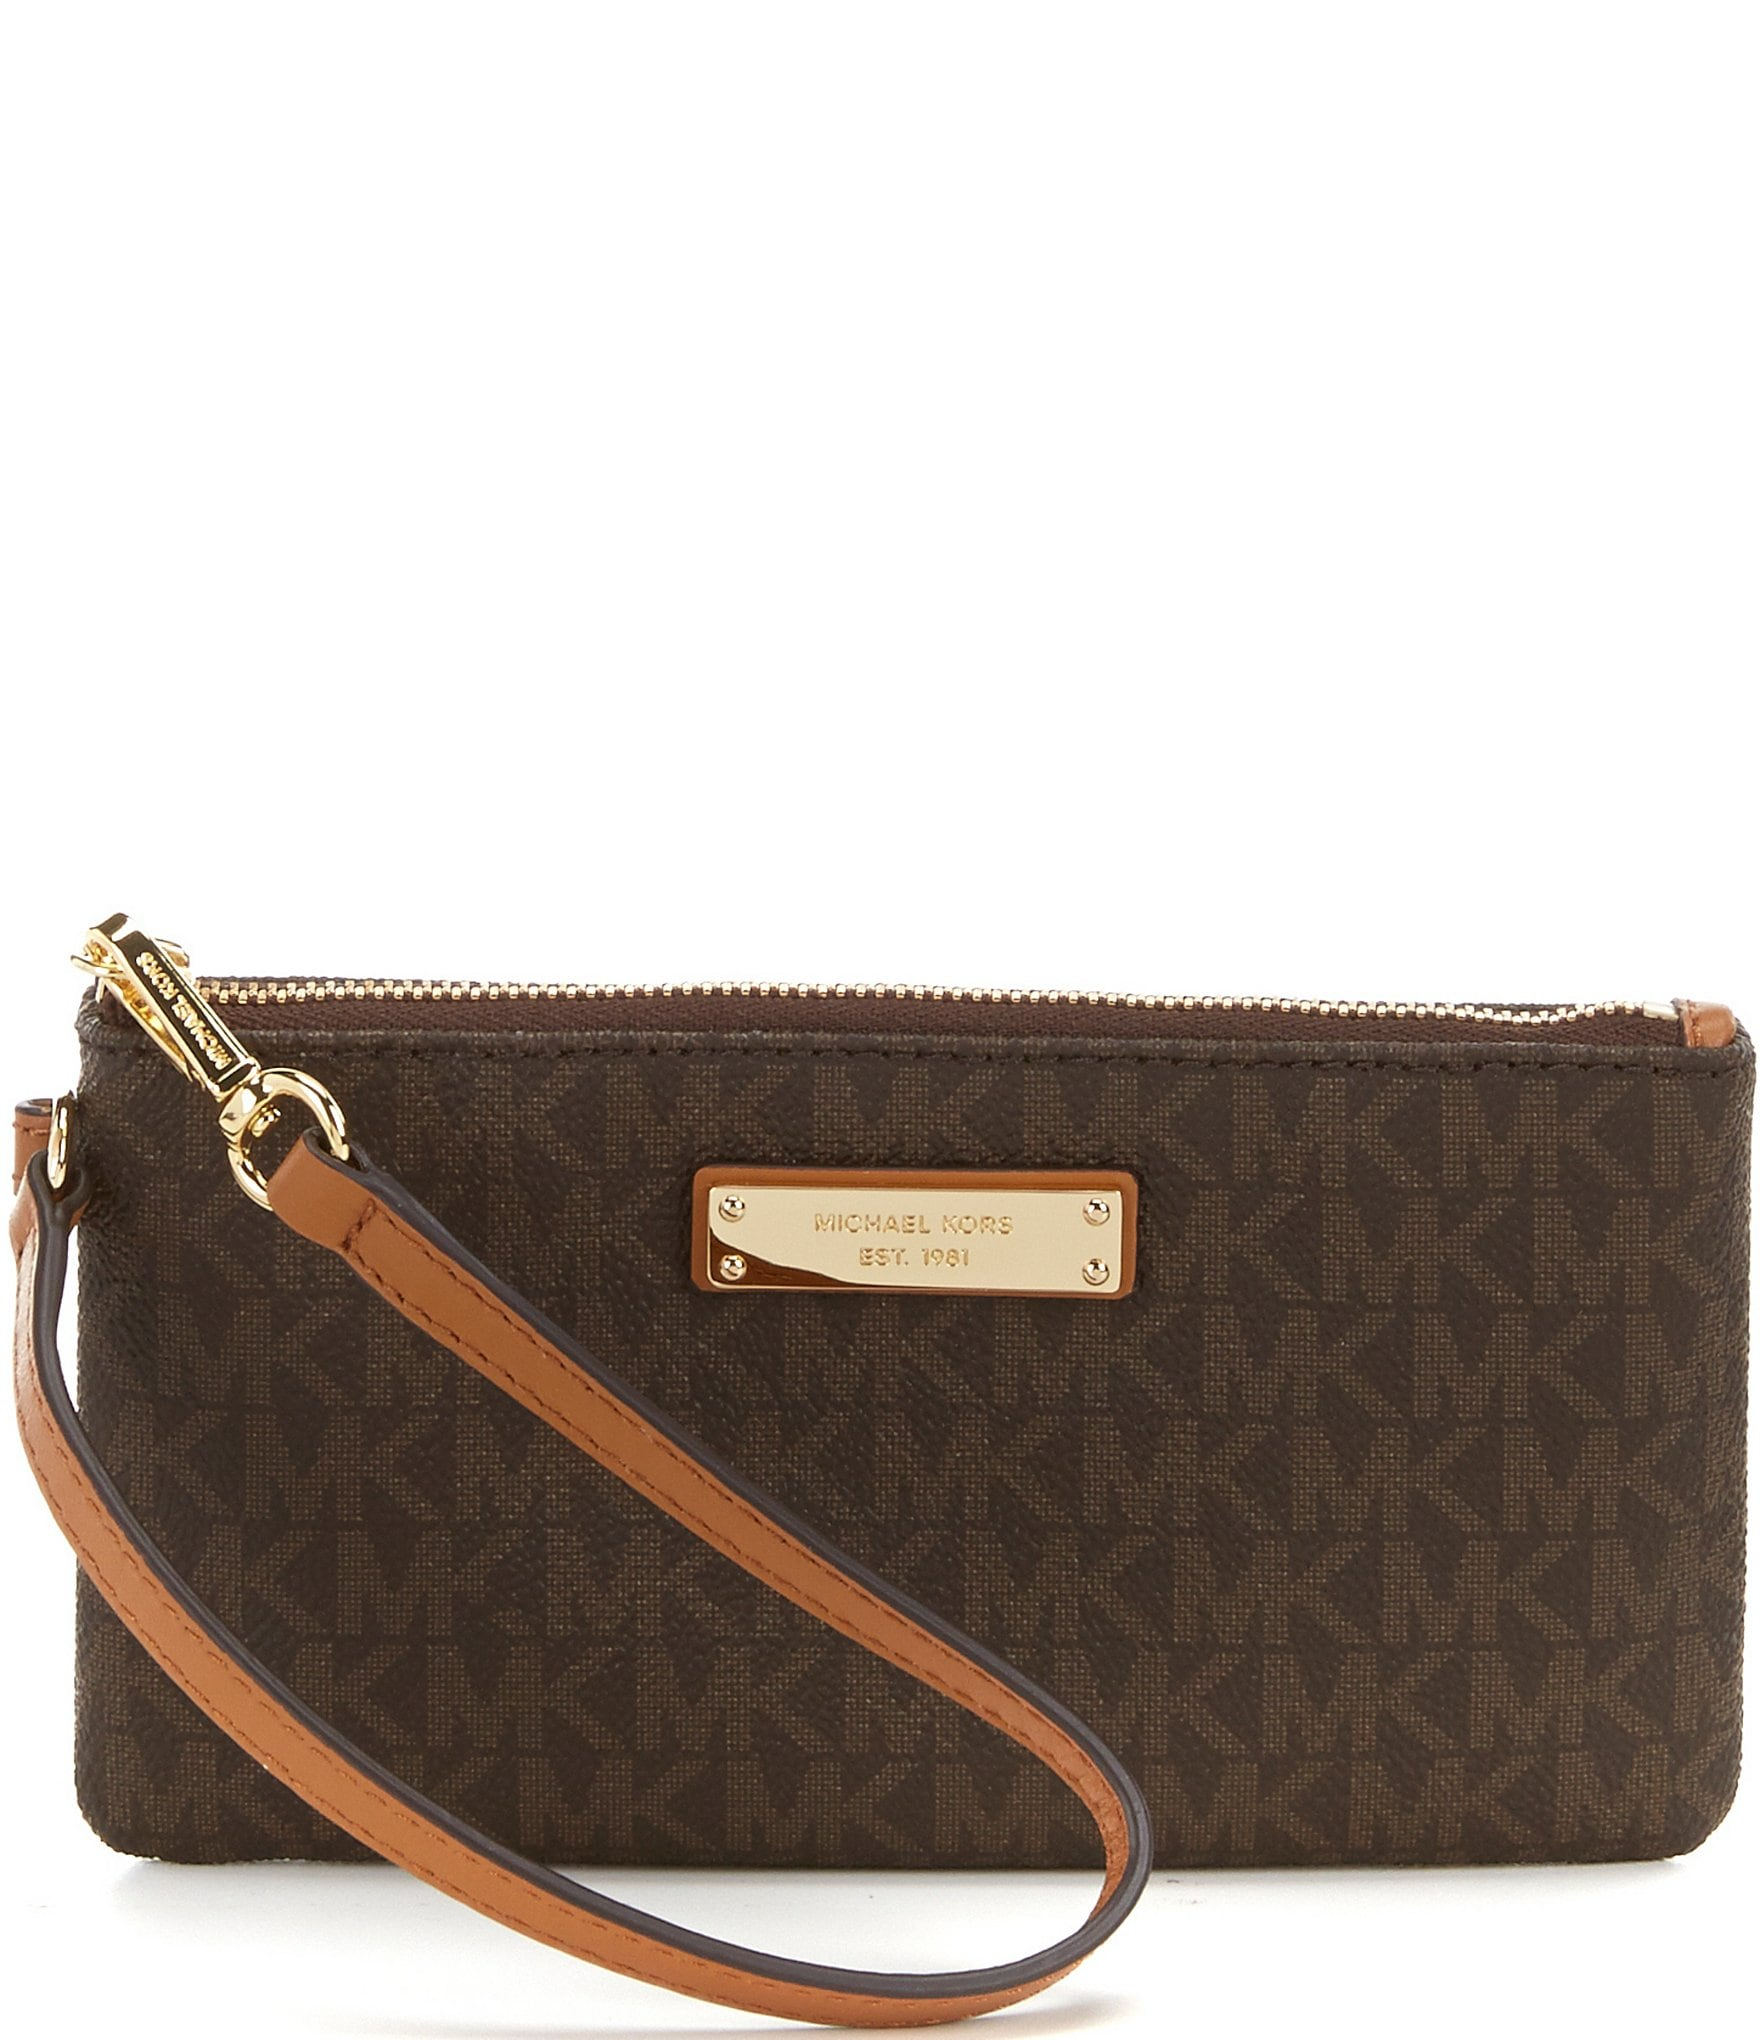 3d39574ce30c kors jet set: Handbags, Purses & Wallets | Dillard's